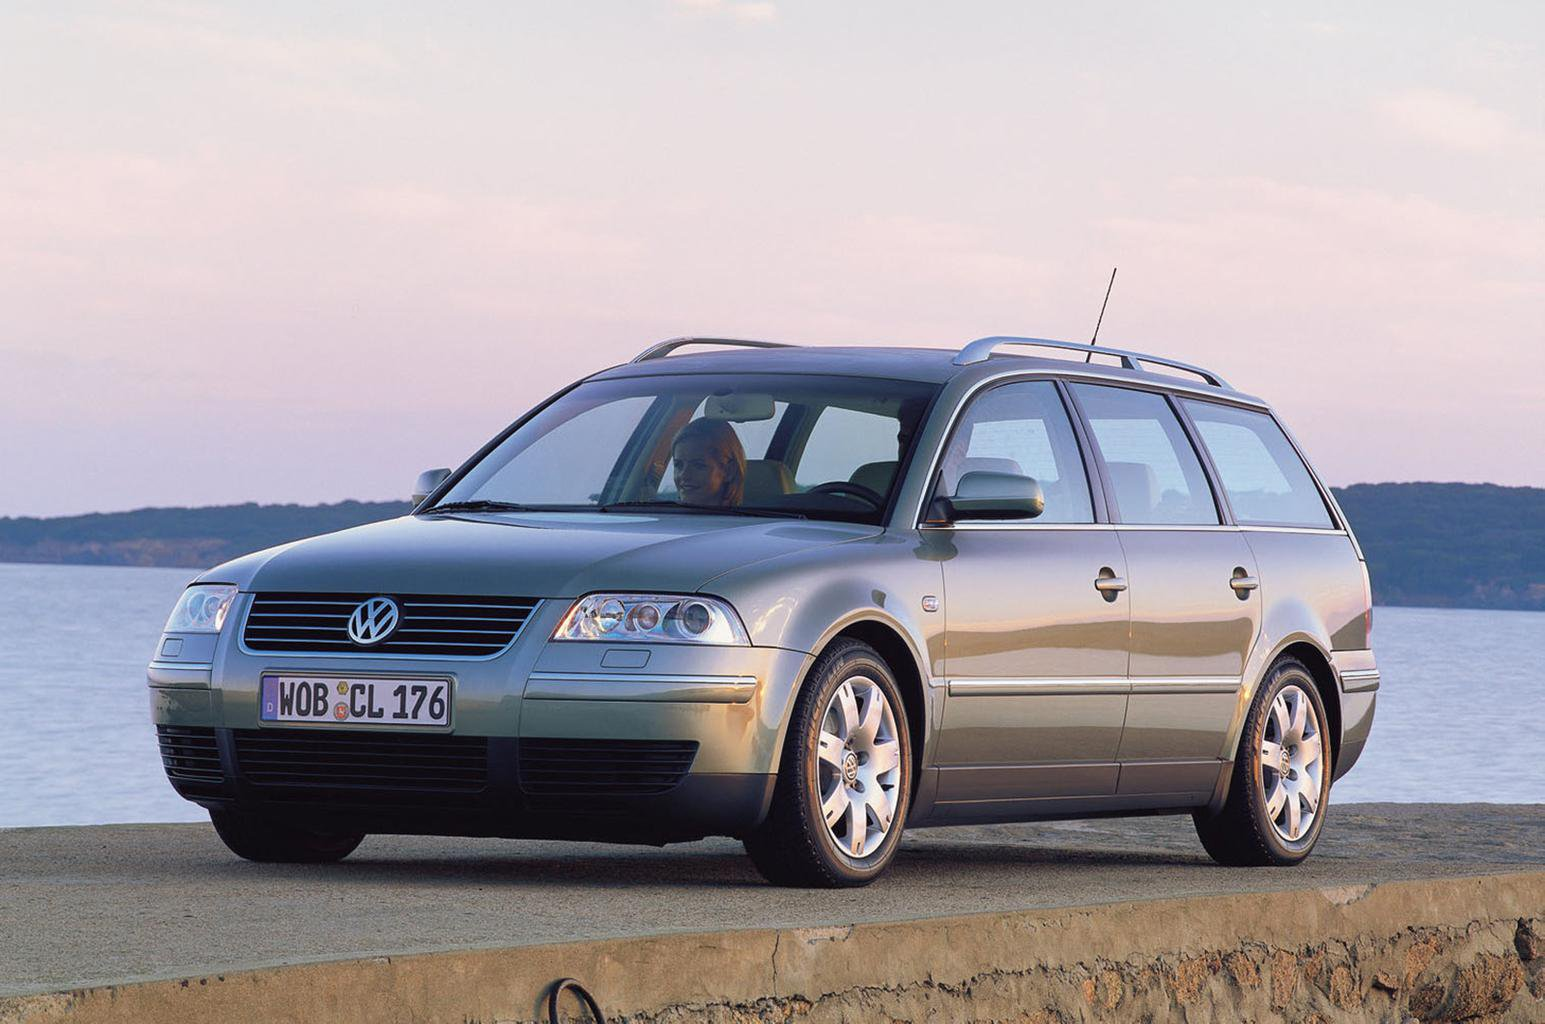 Best used estate cars for less than £2000 (and the ones to avoid)